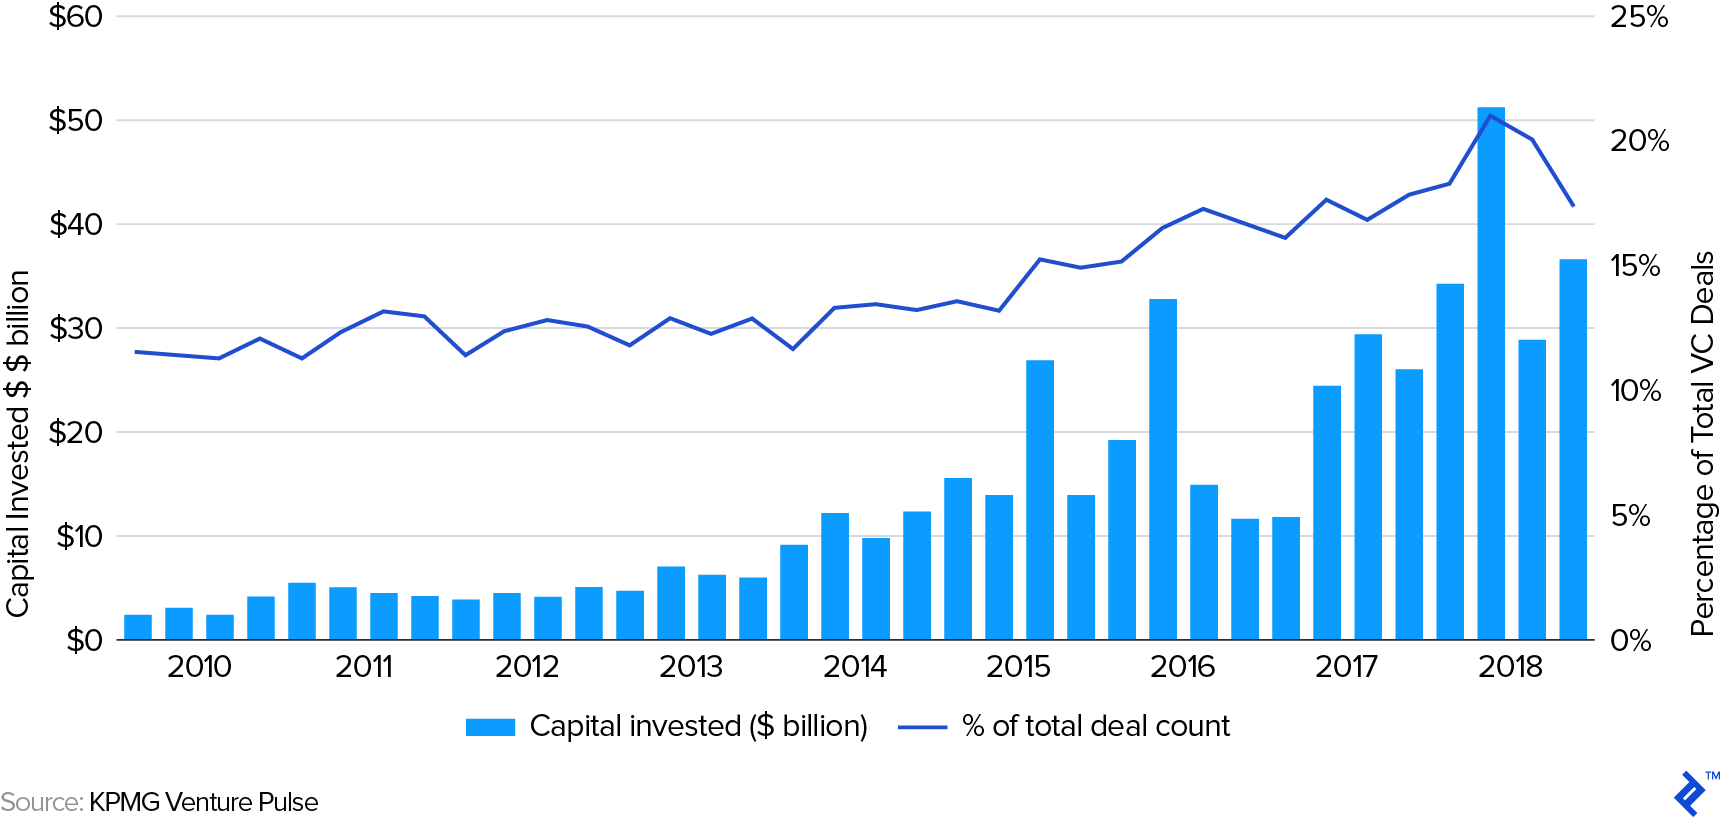 Corporate VC Quarterly Participation in Global Venture Deals: 2010 - 2018